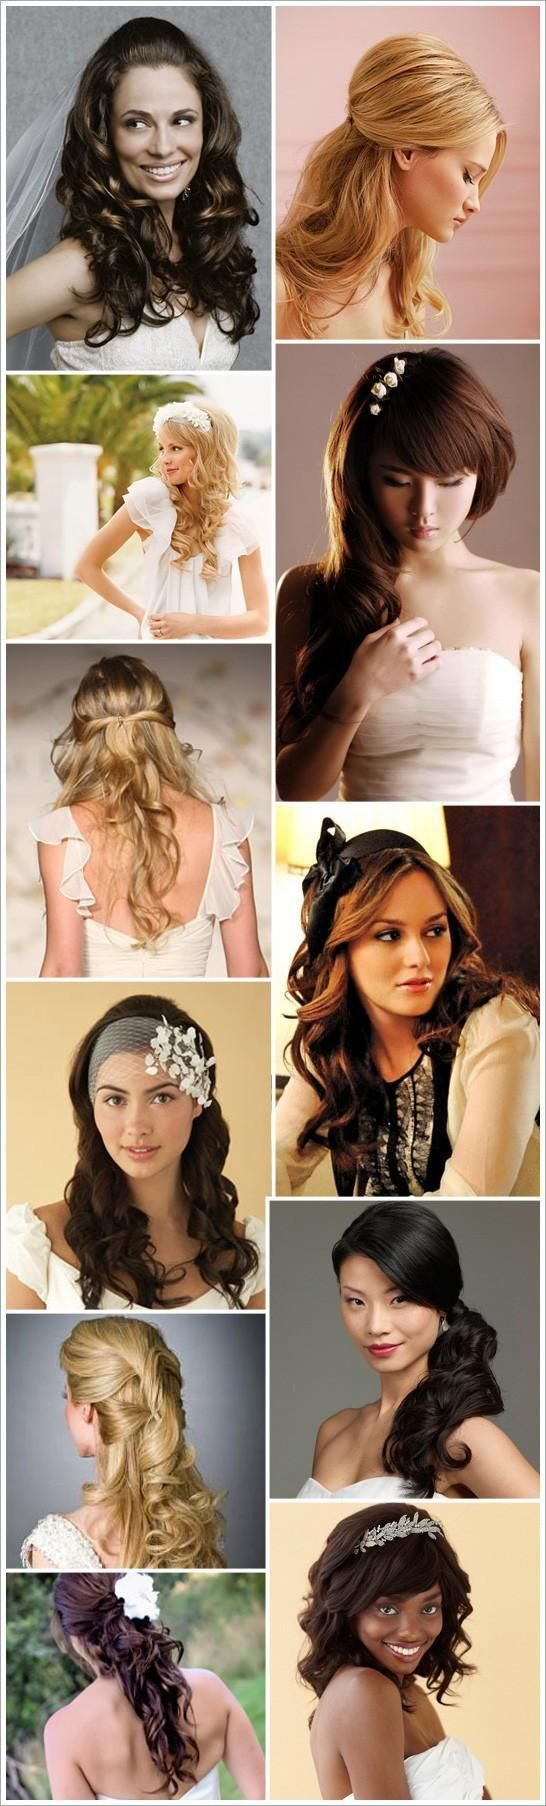 Fabulous wedding hairstyles or for a special event!